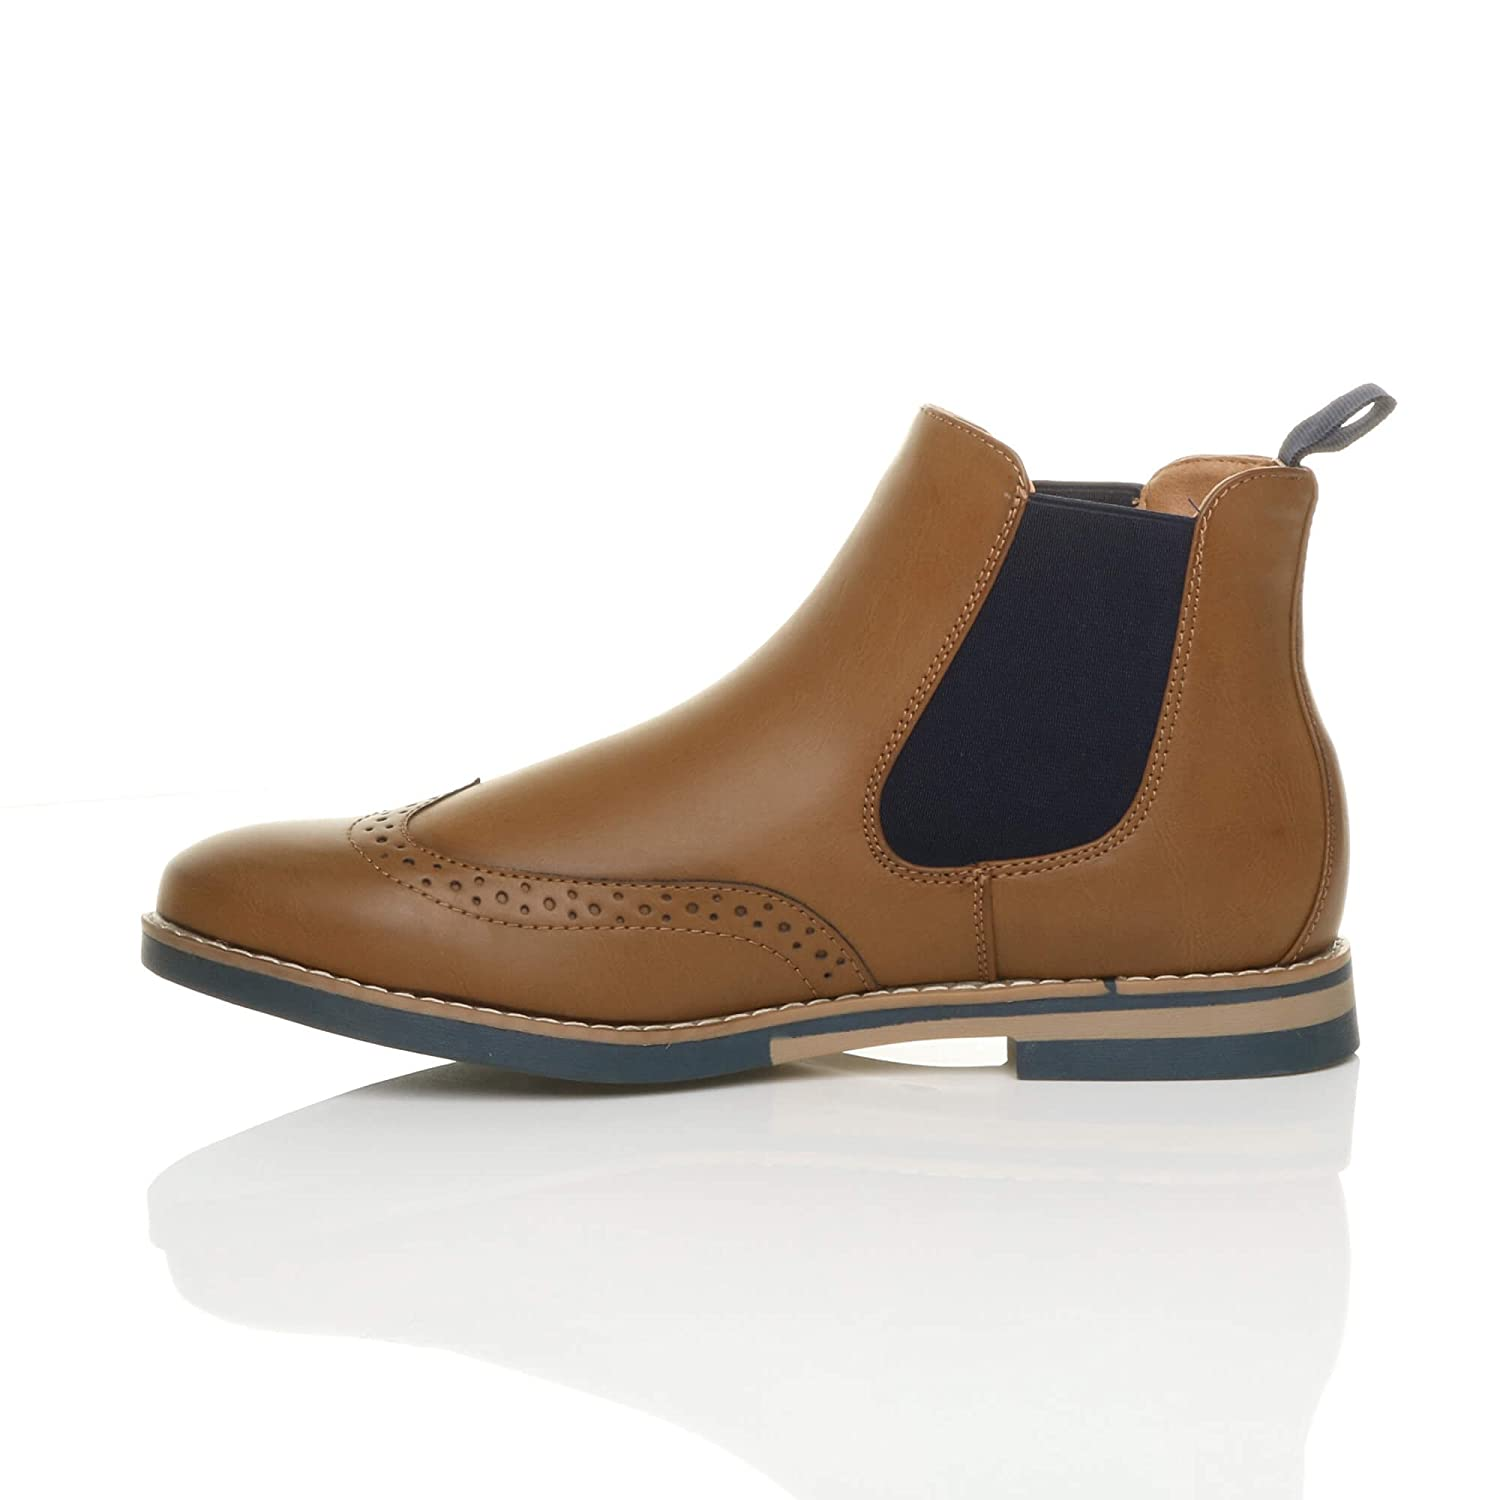 Mens round toe contrast smart work pull on brogues chelsea ankle boots size:  Amazon.co.uk: Shoes & Bags